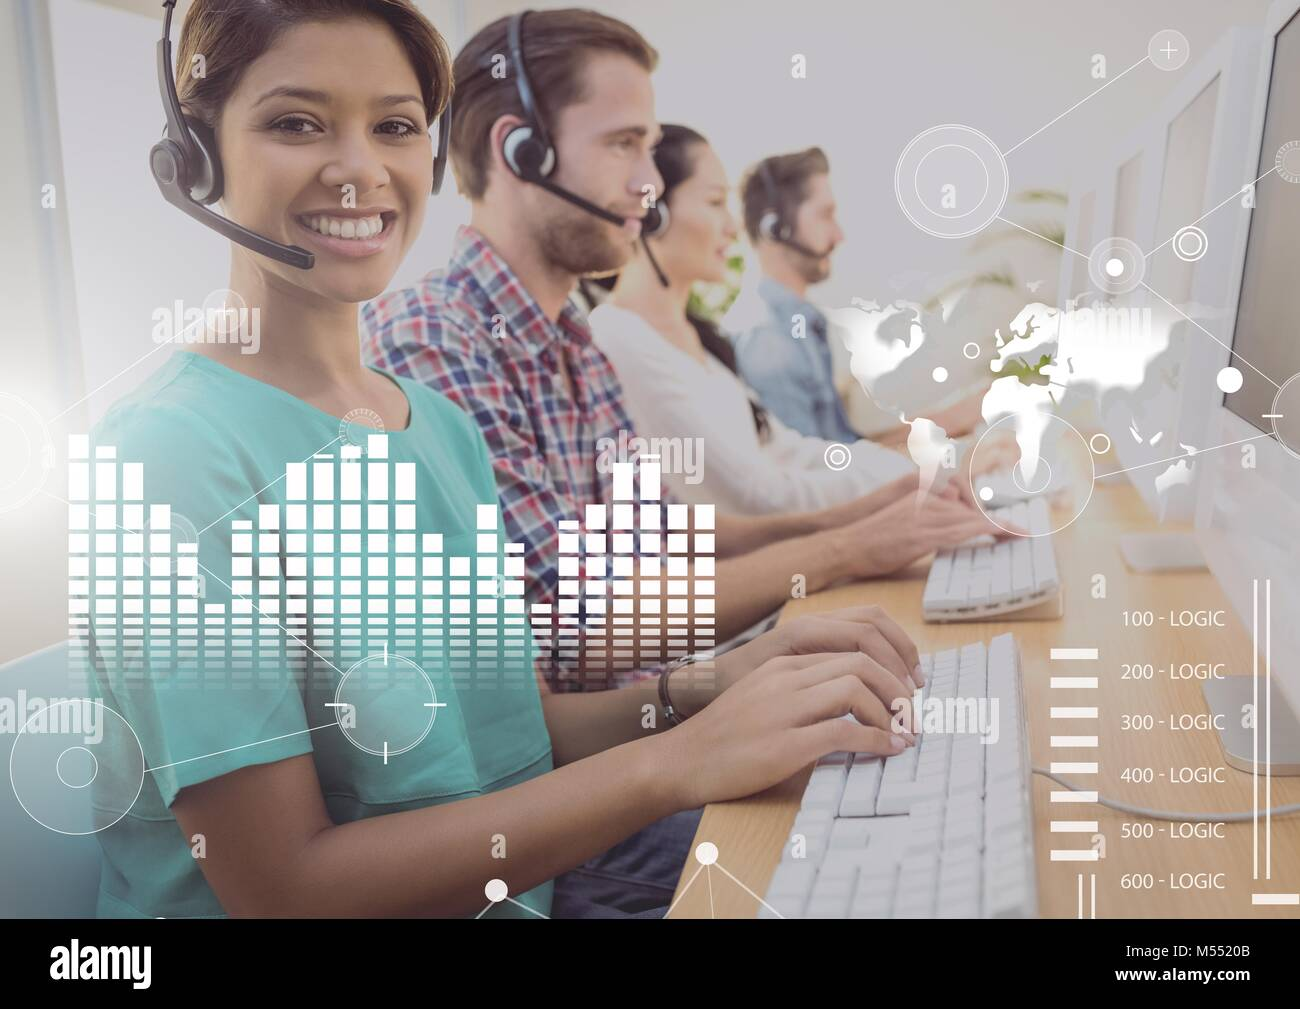 Business Overlay Interface with customer service people and computers Stock Photo